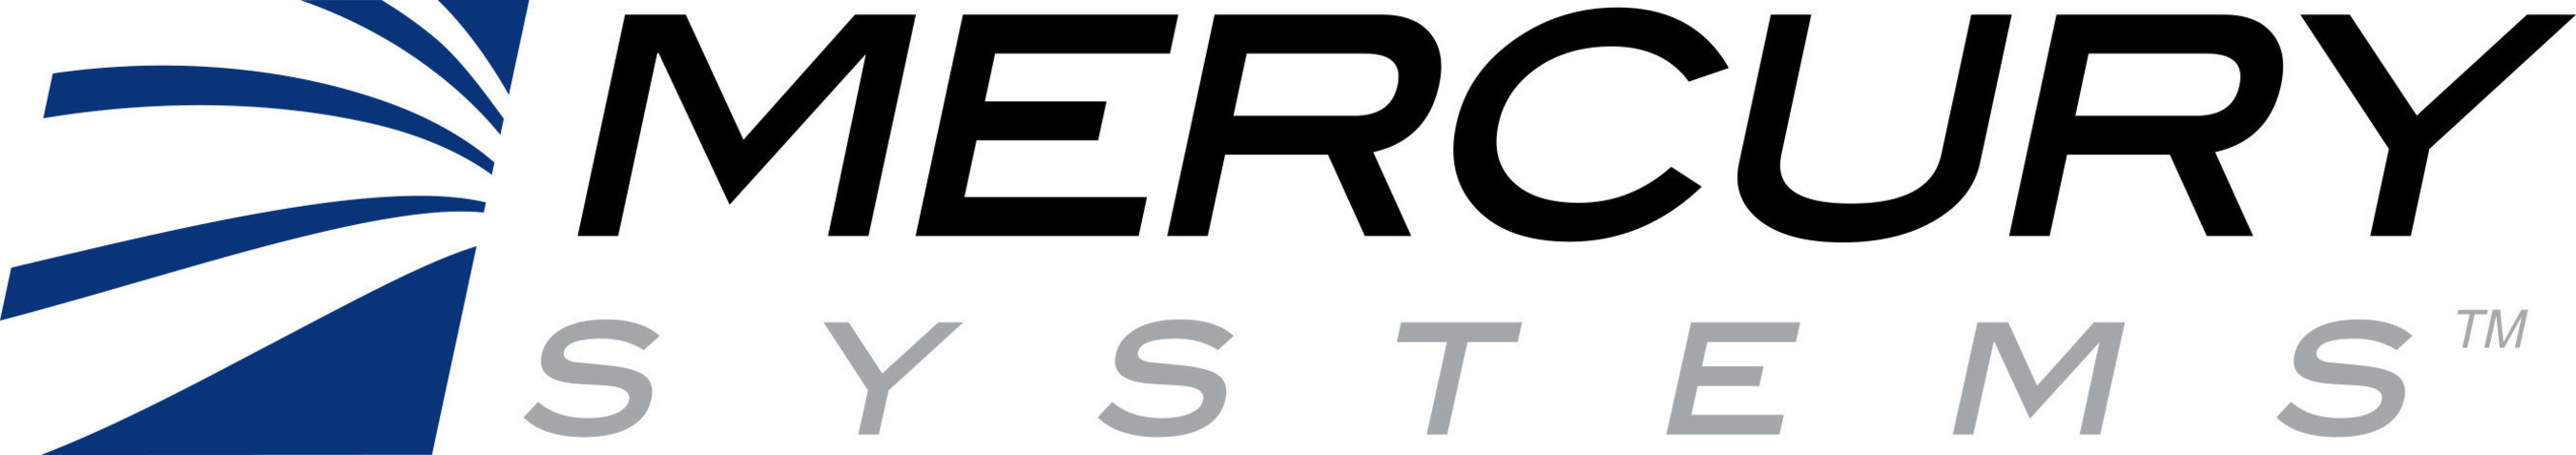 Microsemi Corporation and Mercury Systems, Inc. announced the scheduled closing for Microsemi's sale of its embedded security, RF and microwave, and custom microelectronics businesses to Mercury Systems